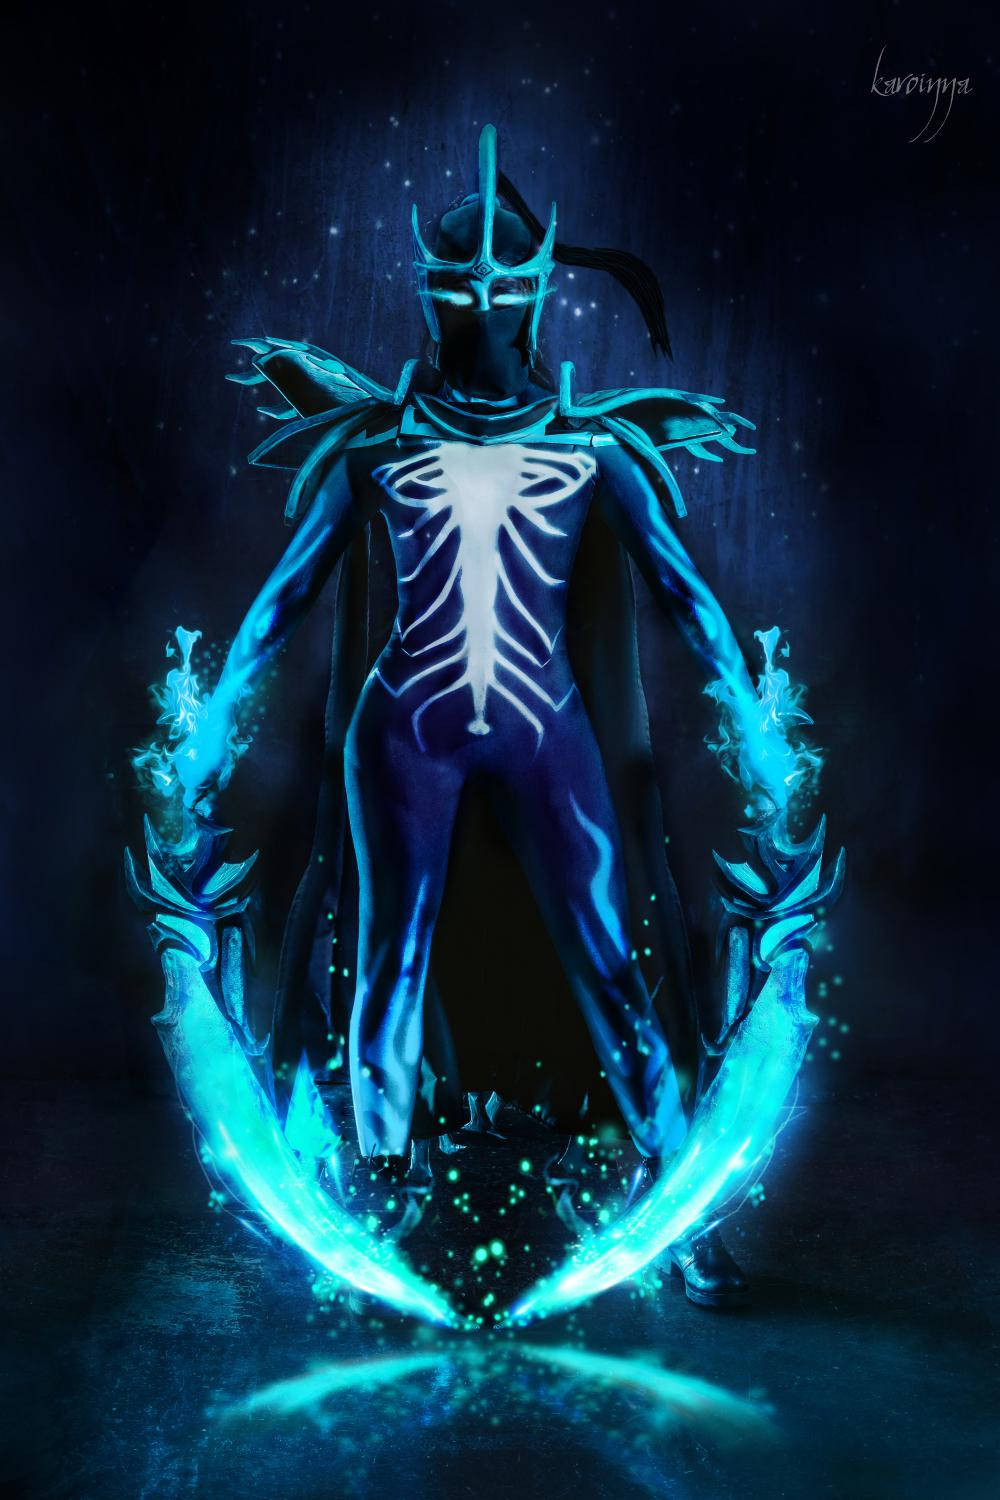 Phantom Assassin Arcana : phantom, assassin, arcana, Phantom, Assassin, Arcana, Karoinna, DotA2